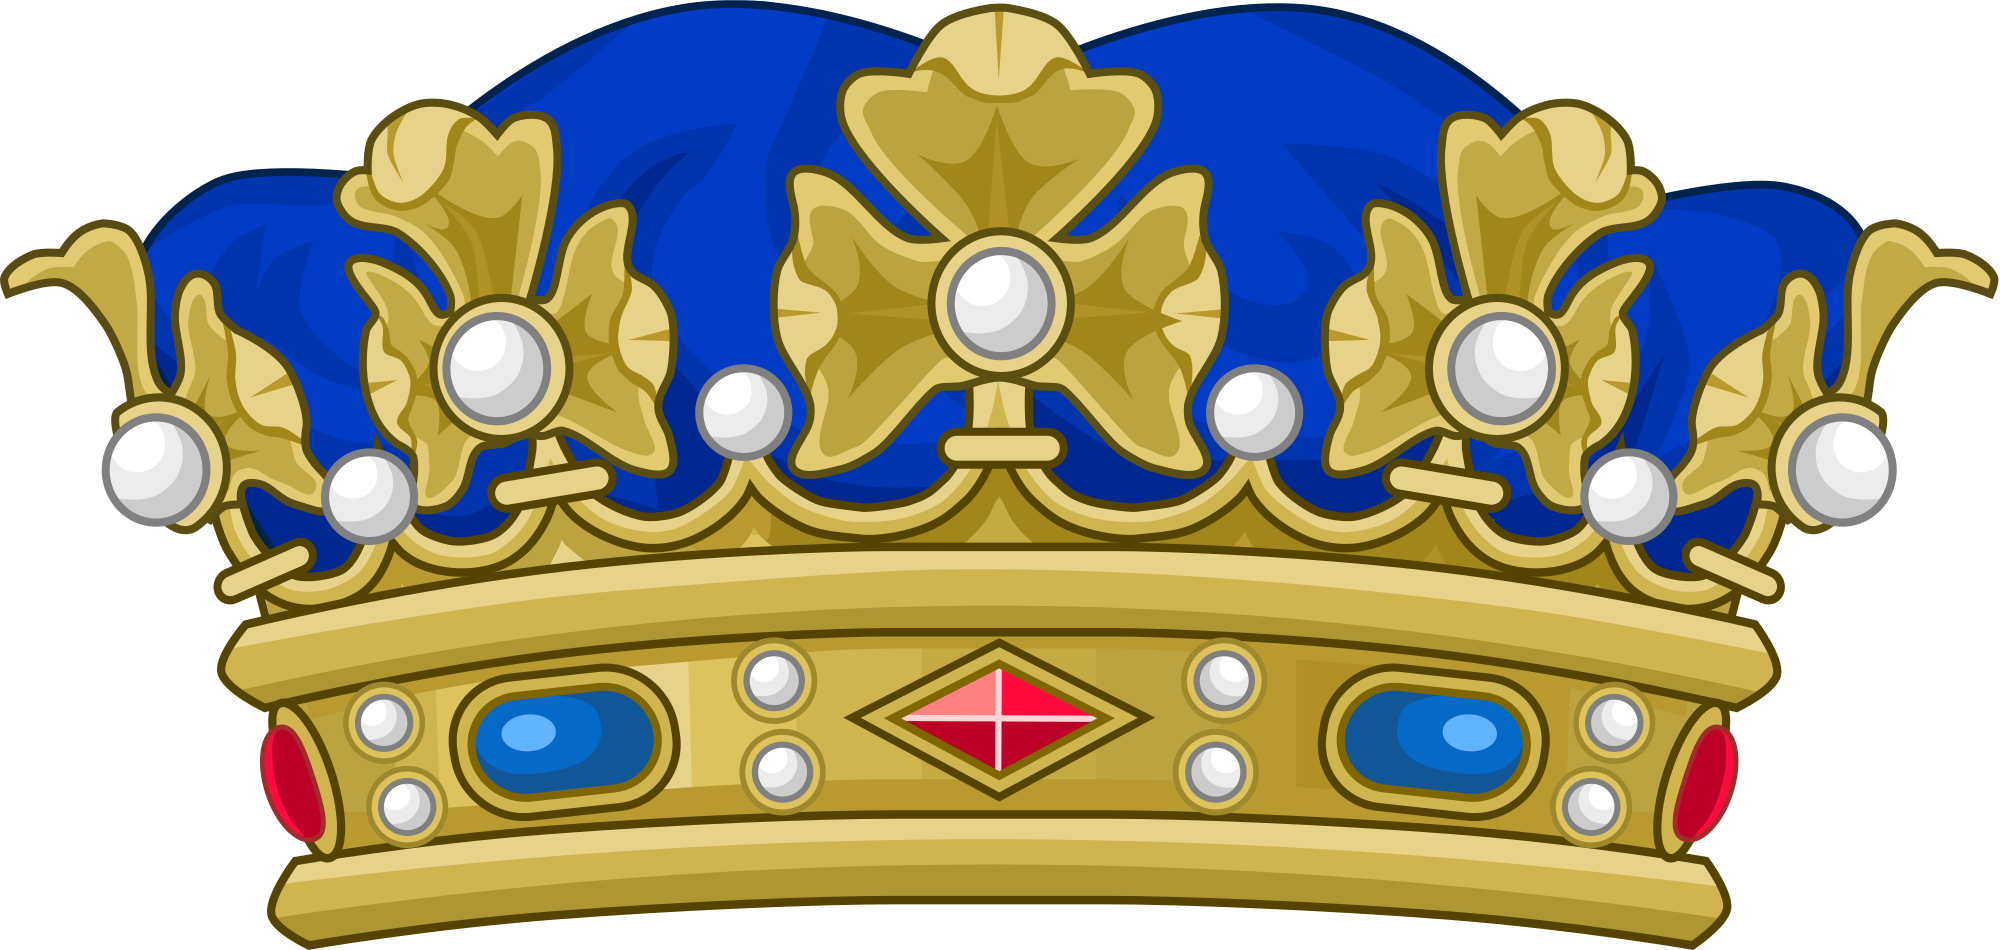 Peerage of wikipedia. France clipart french item